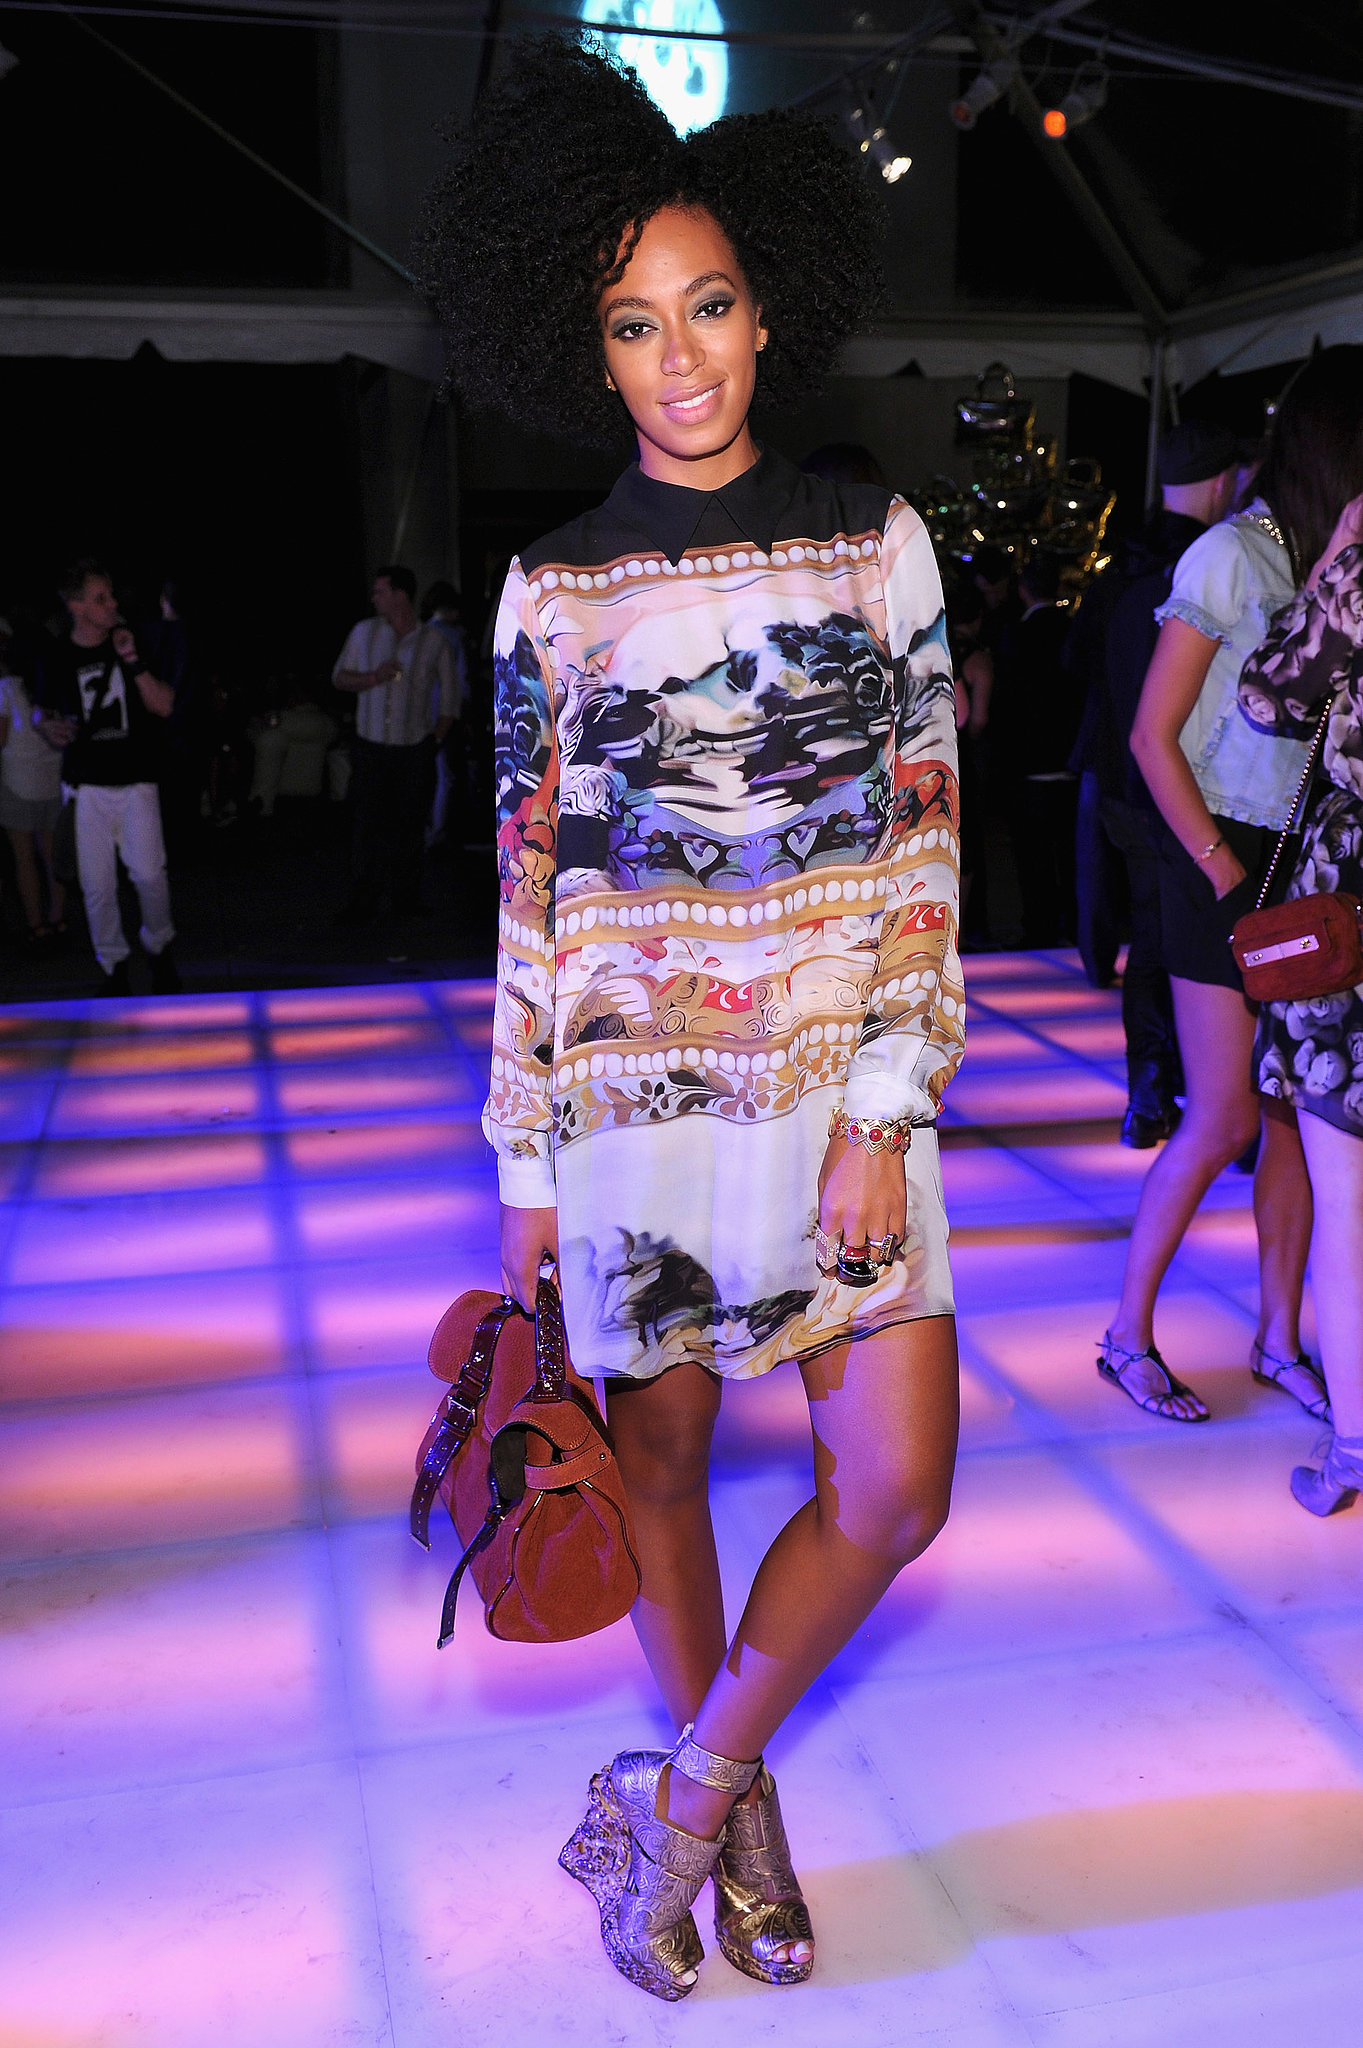 For a night out at Mulberry's 40th anniversary party, Solange went bold in a long-sleeved, '70s-chic printed dress by Mary Katrantzou, Nicholas Kirkwood for Rodarte gold heels, and a Mulberry satchel.